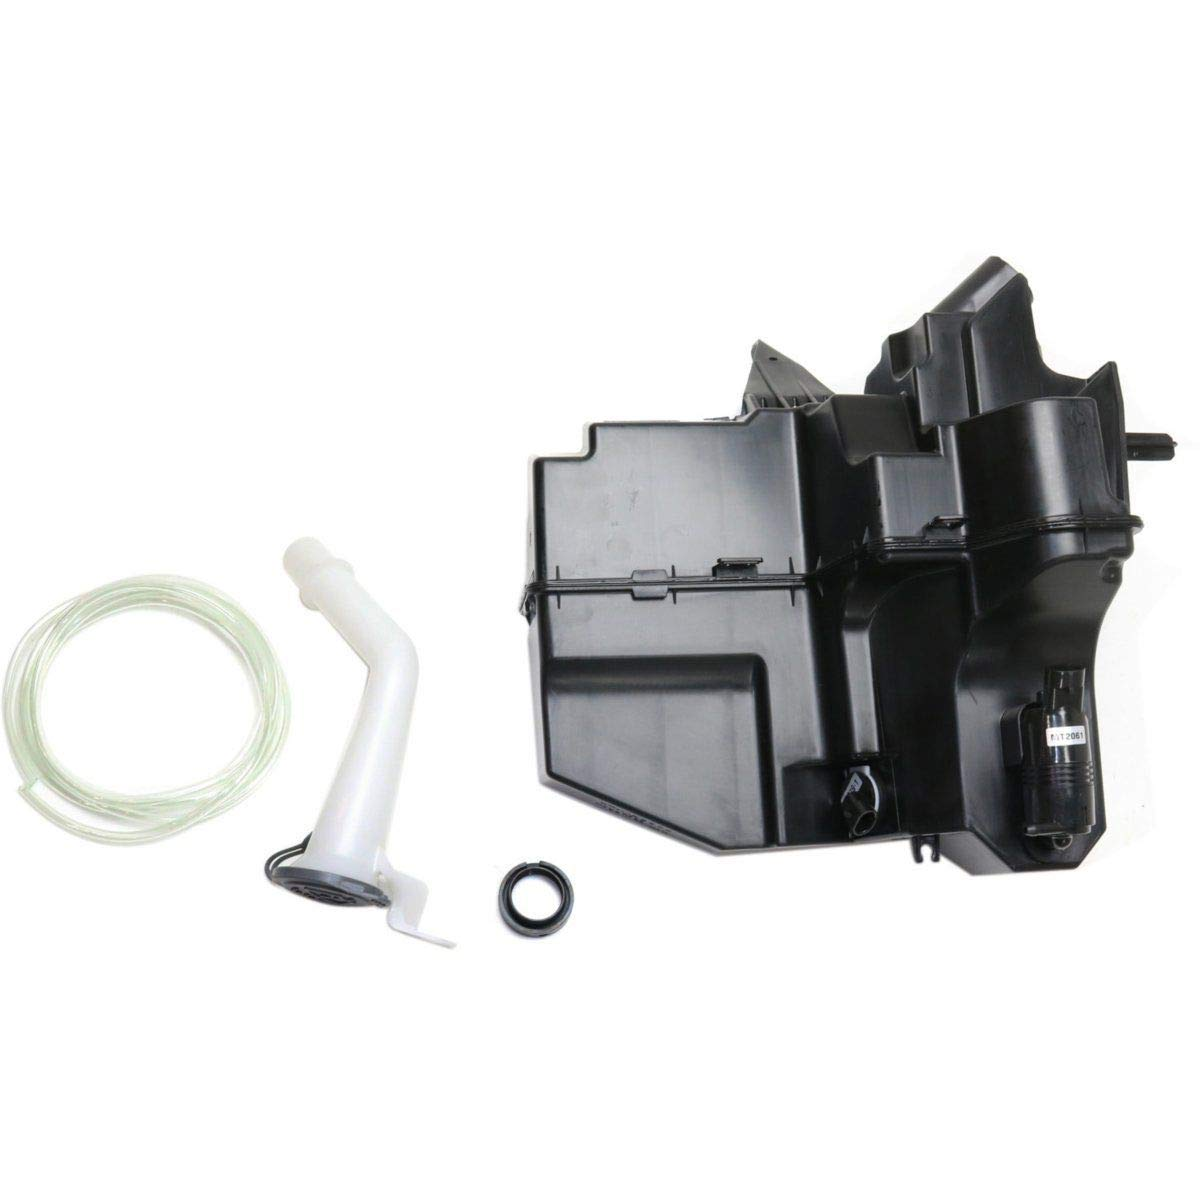 New Windshield Washer Tank For 2013-2018 Nissan Altima, 2016-2018 Maxima Assembly, With Pump, Inlet/Cap/Sensor, Without Navigation System NI1288165 289109HM0A